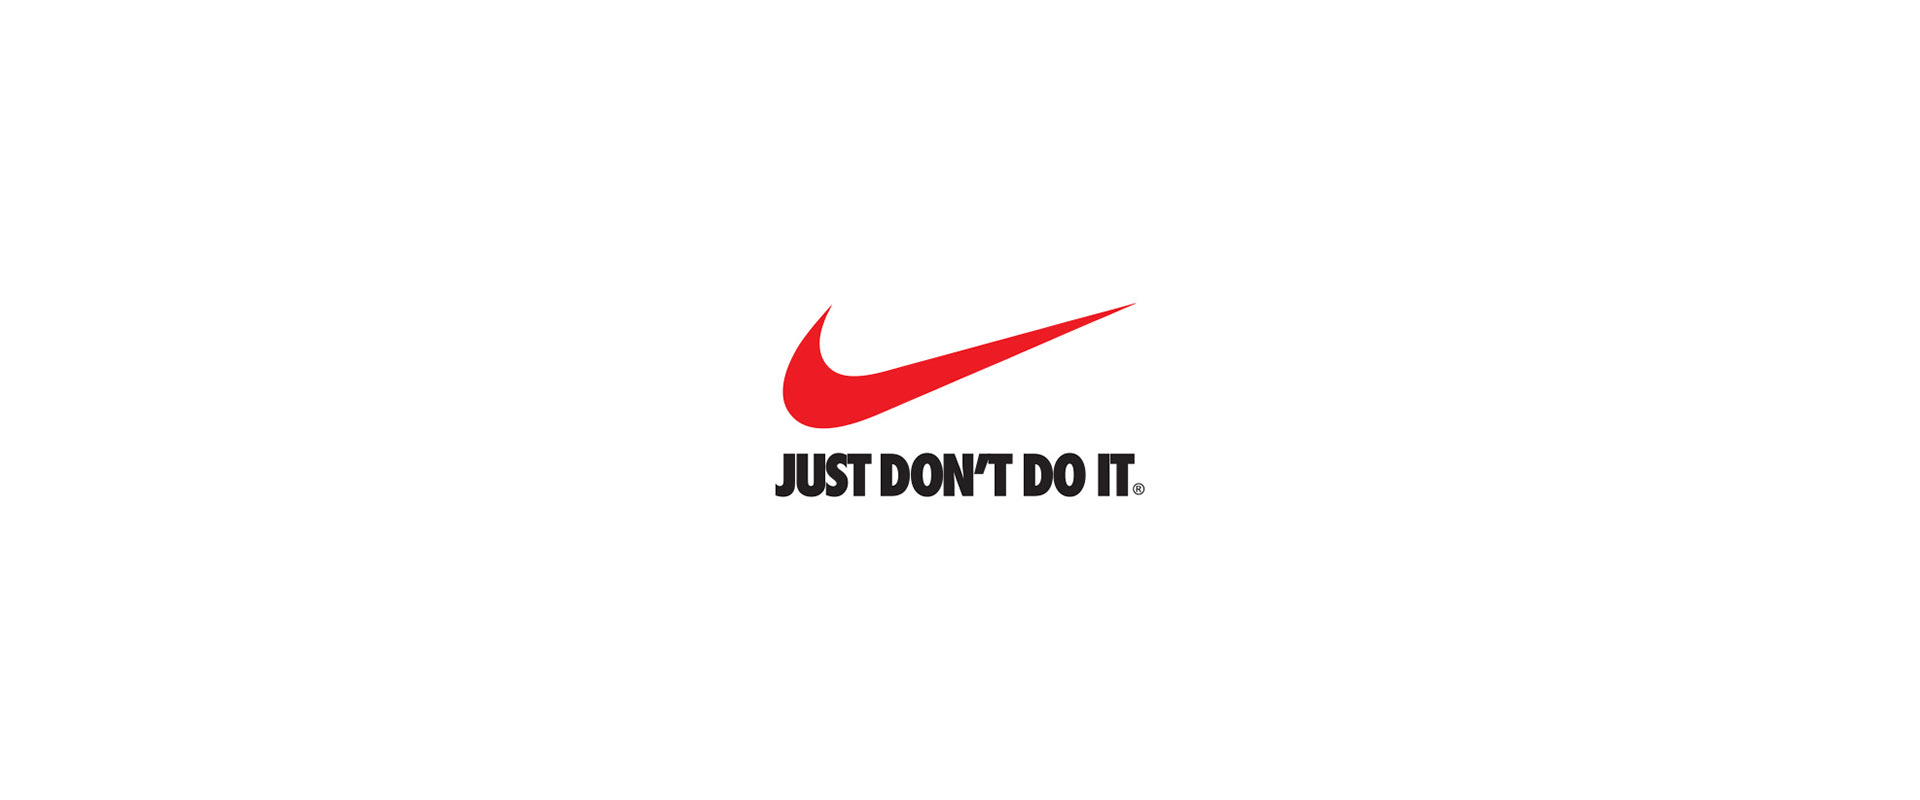 nike-just-dont-do-it